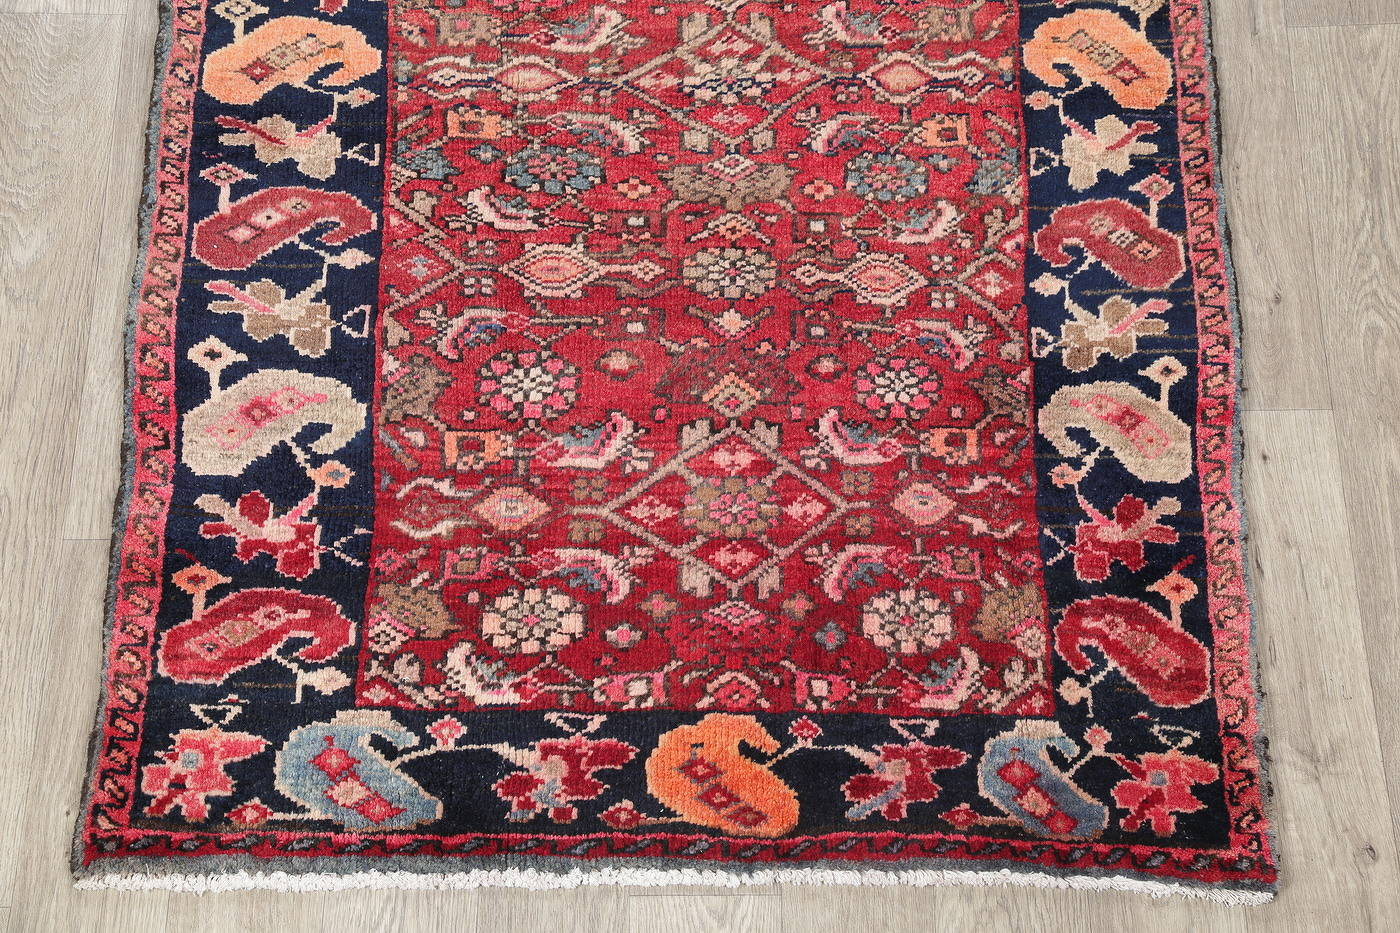 Hand-Knotted Red Geometric Heriz Persian Area Rug Wool 4x5 image 5